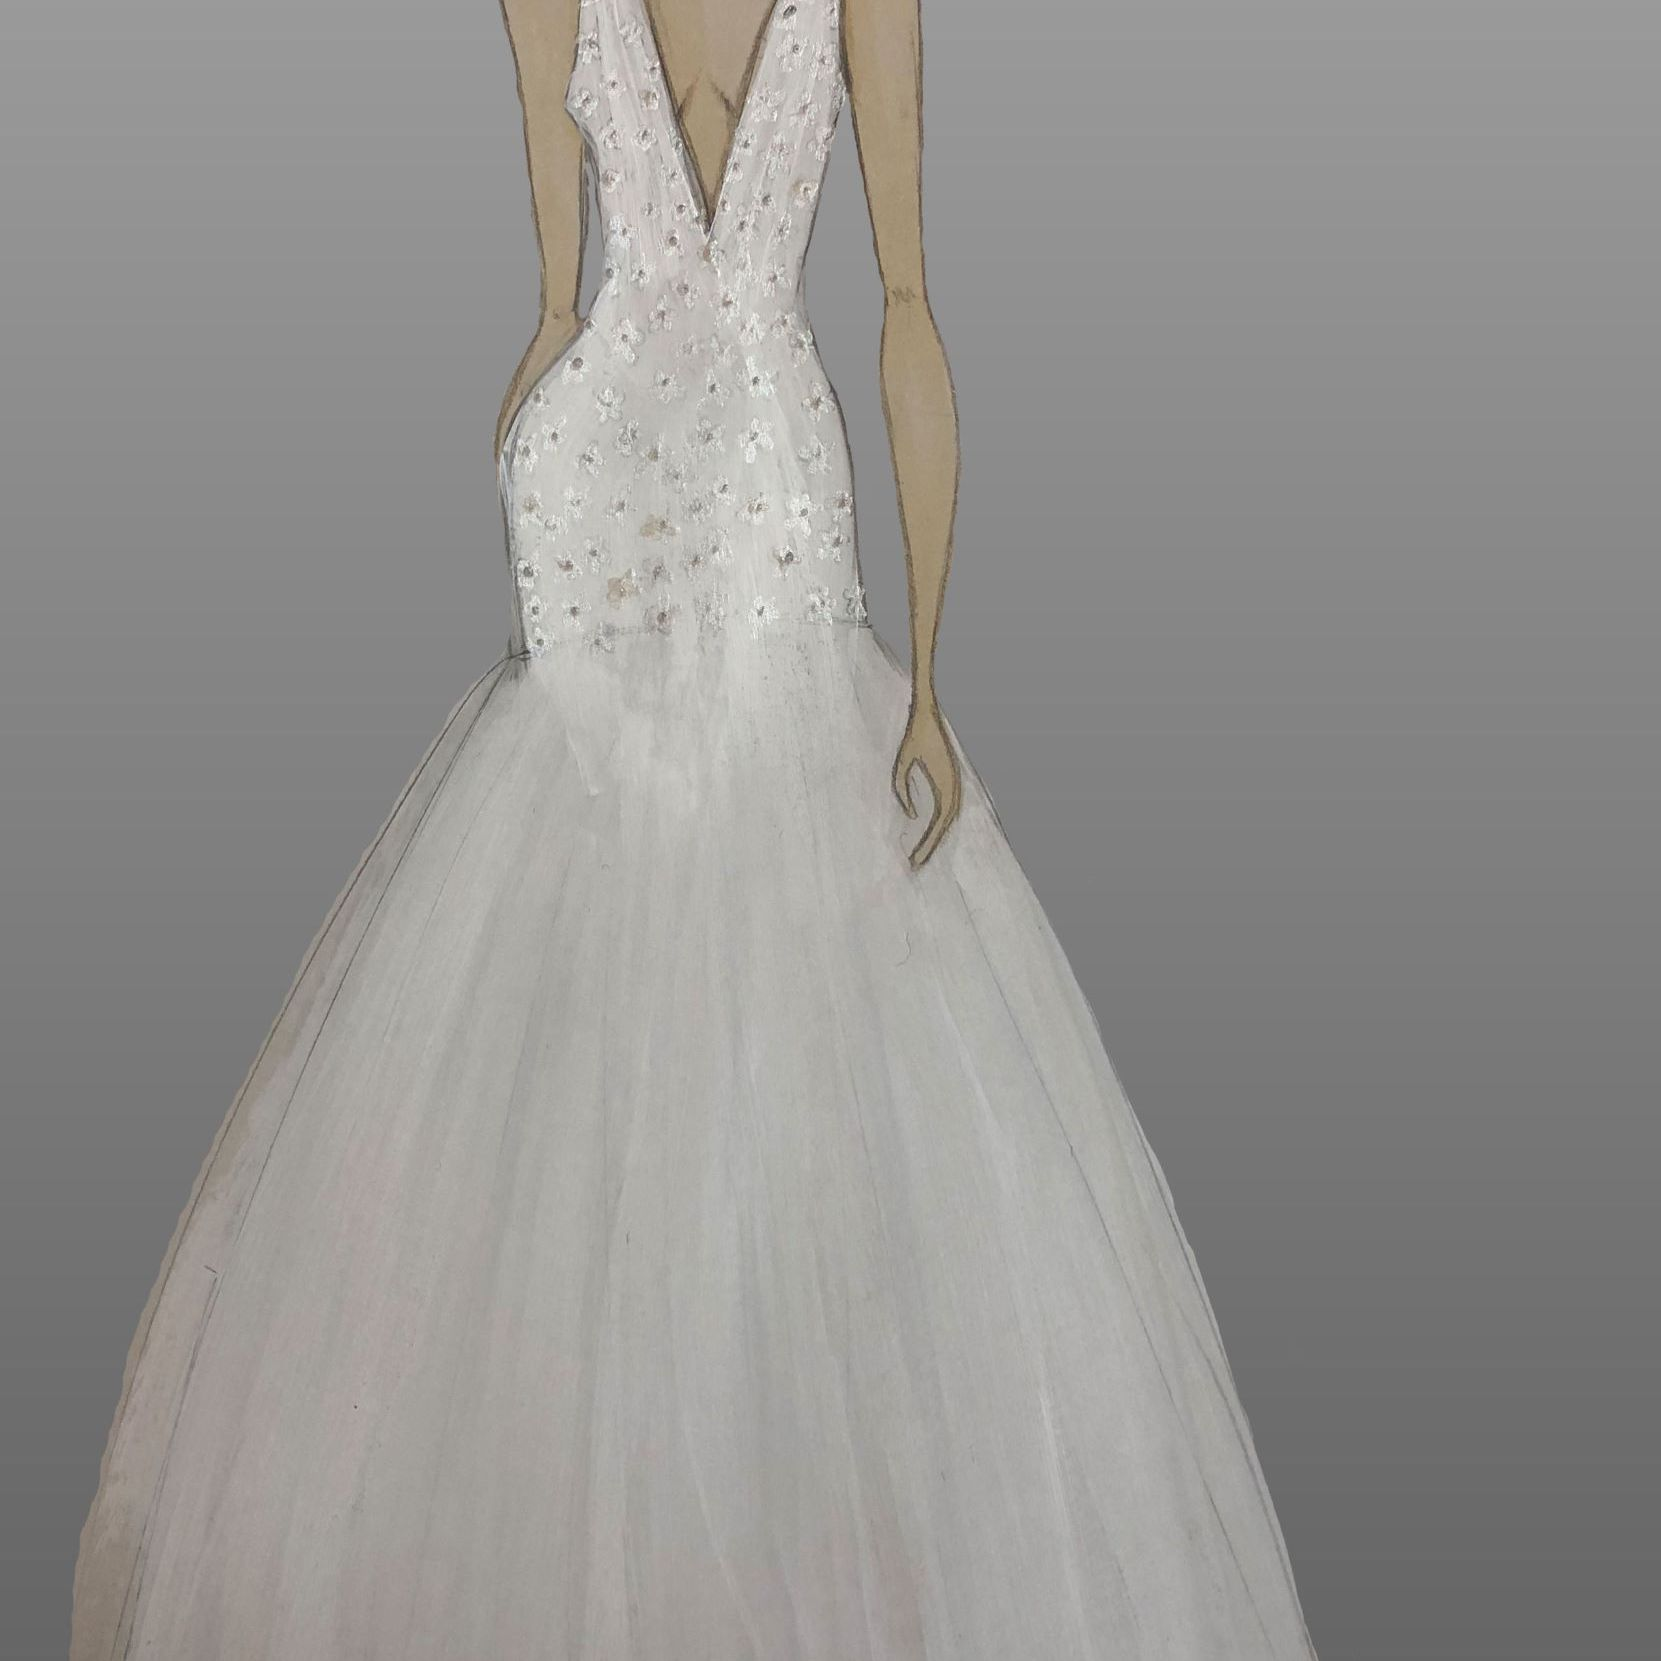 860a256184e04 Say Hello to the New Wedding Dresses for Your 2019 Wedding